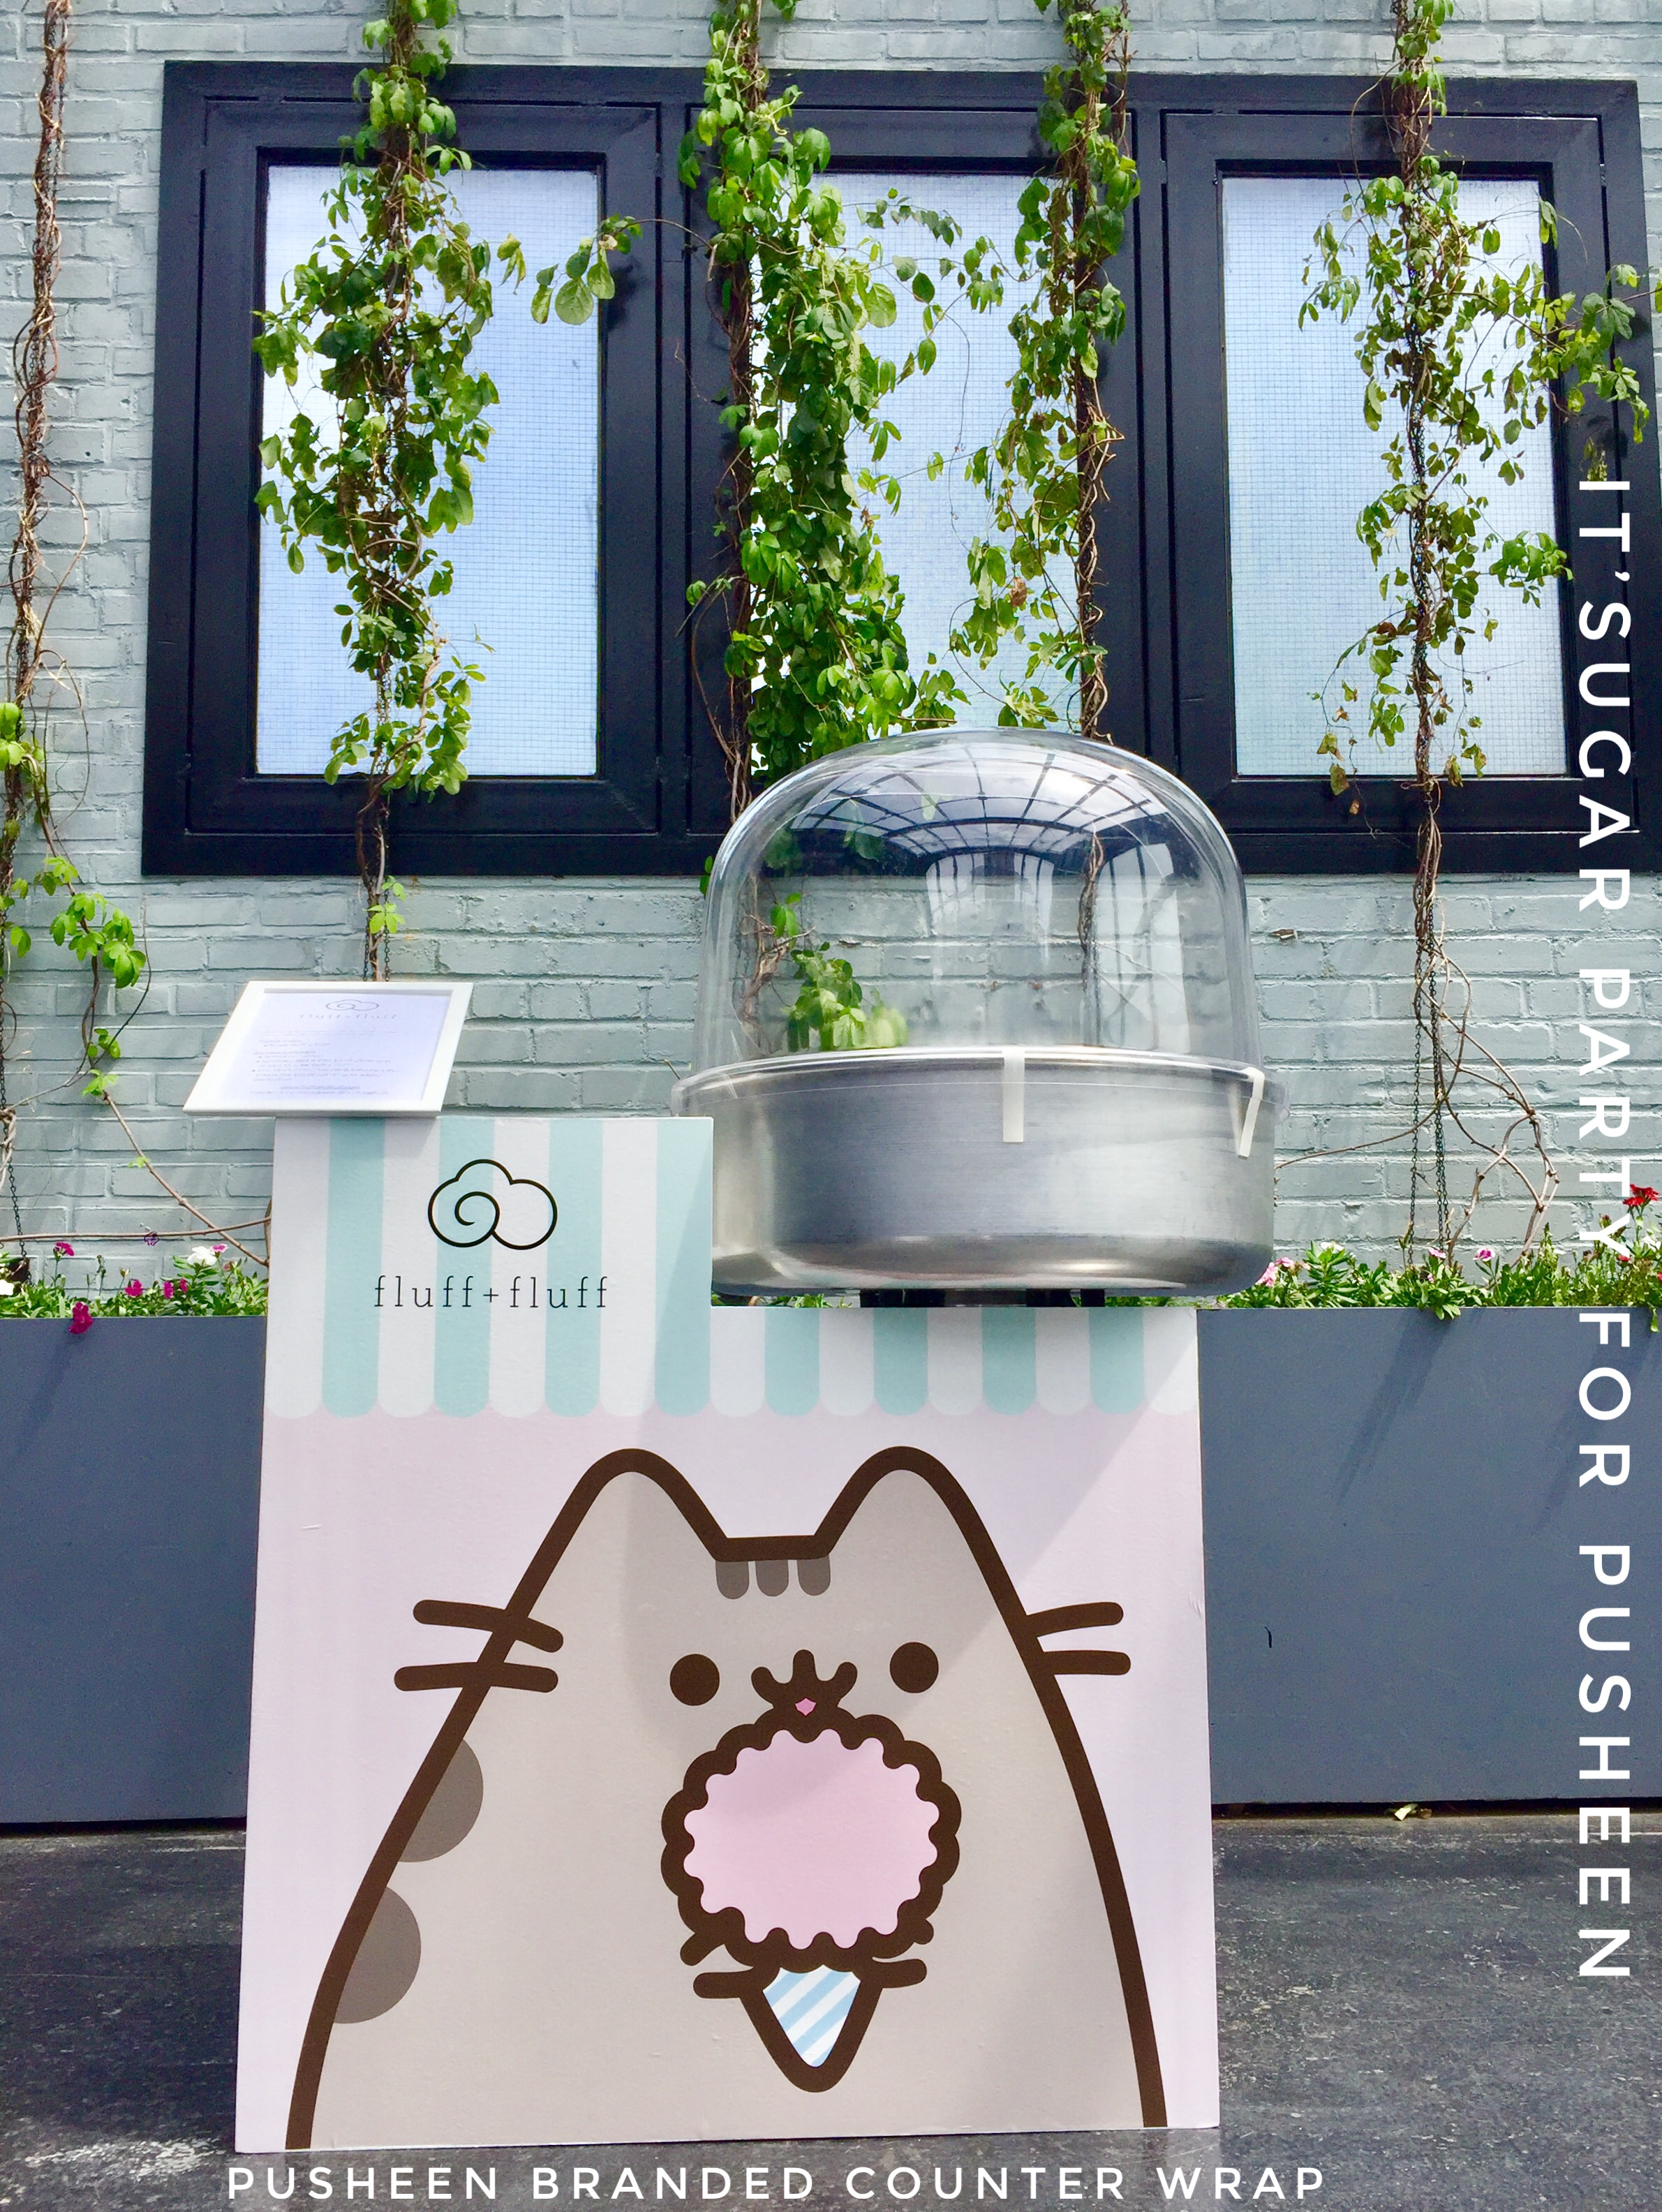 Branded Counter Wrap for Pusheen